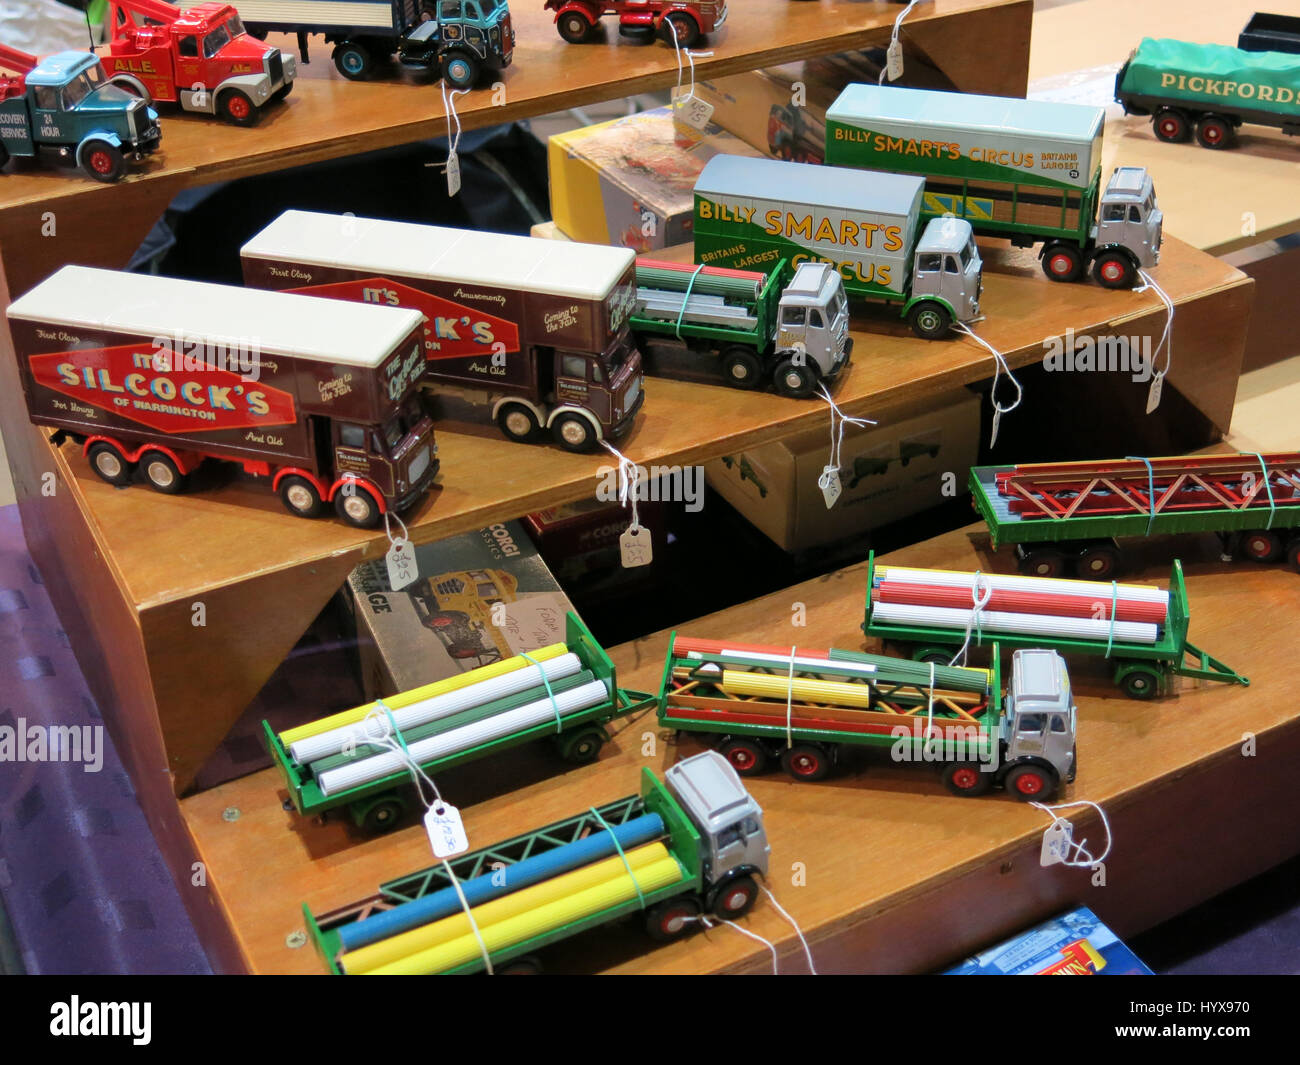 Toys On Display Stock Photos & Toys On Display Stock Images - Alamy